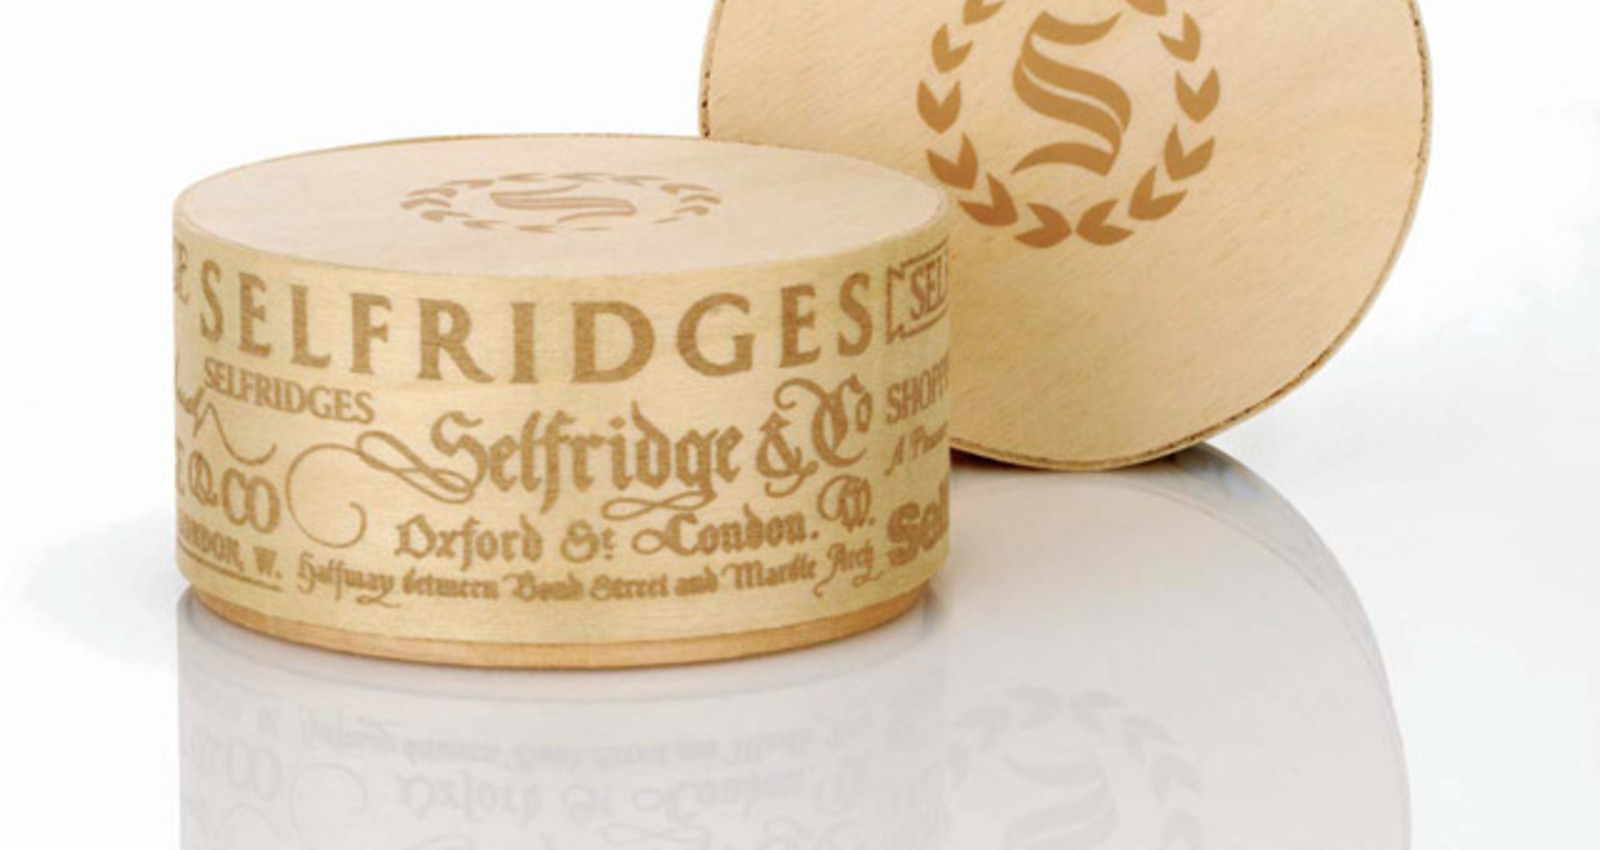 Selfridges Brand Packaging